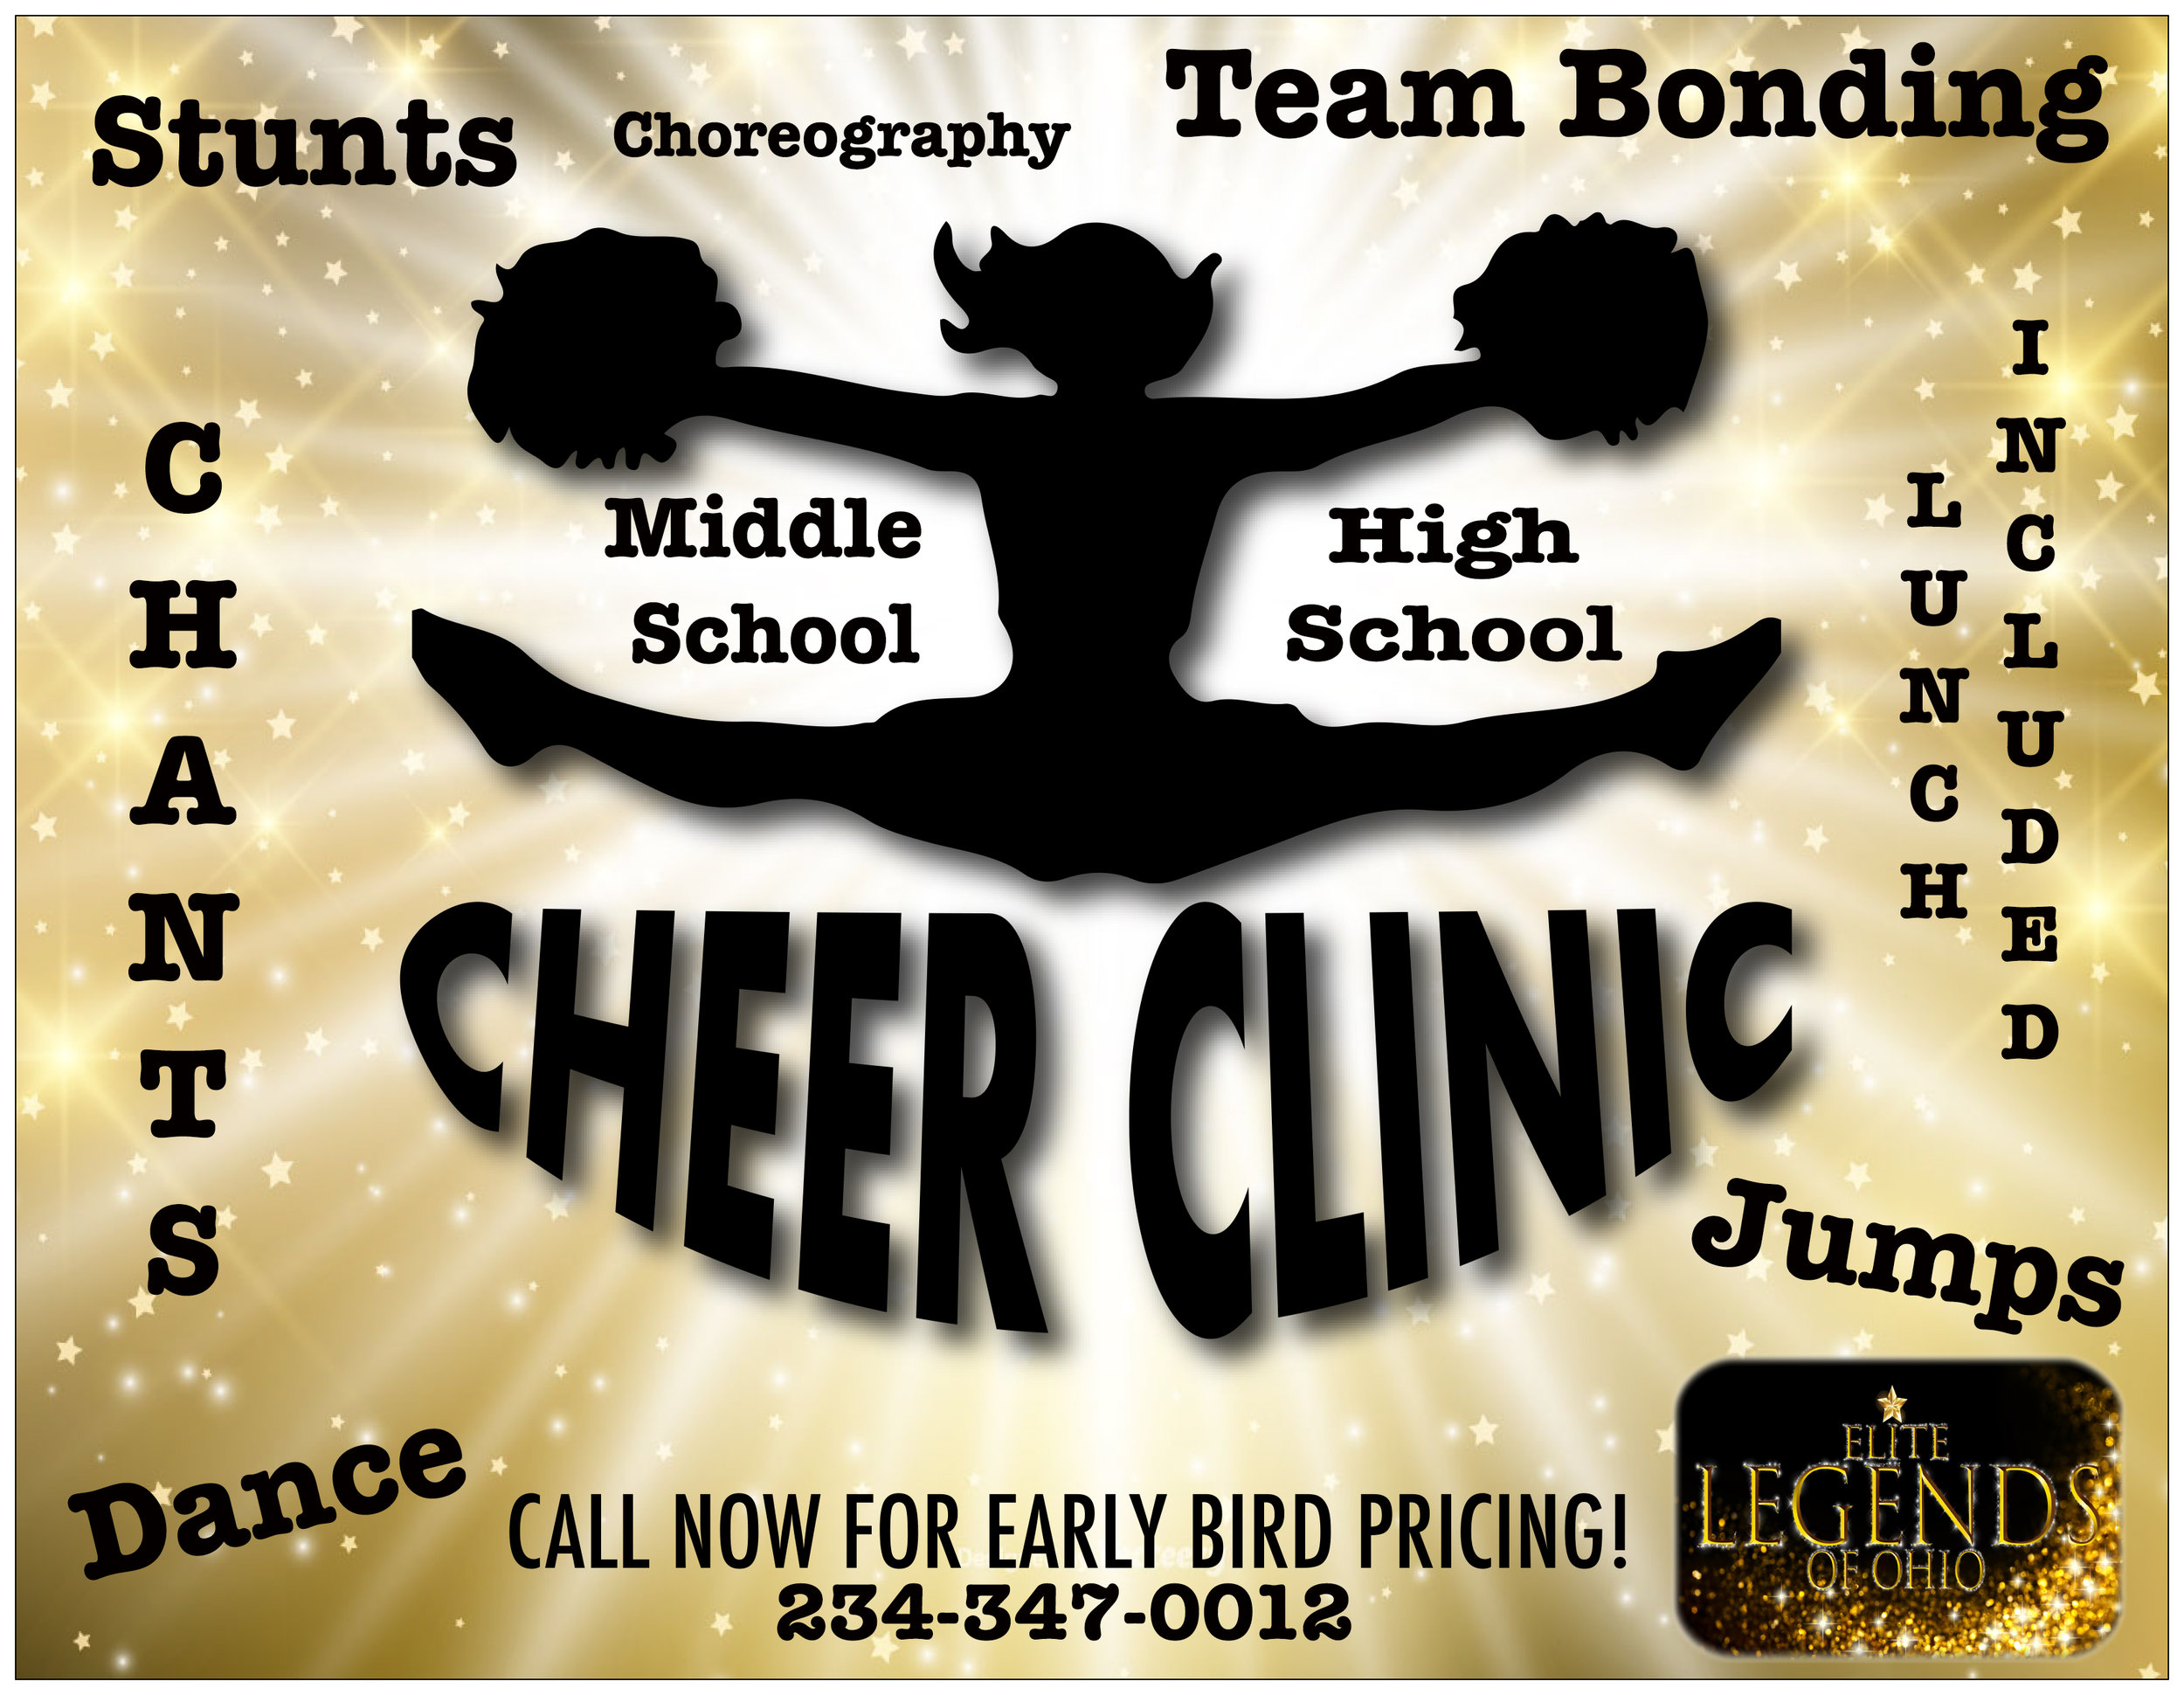 Book your teams 2 day Summer Cheer Clinic now! Early Bird pricing available. *Deposit Required.